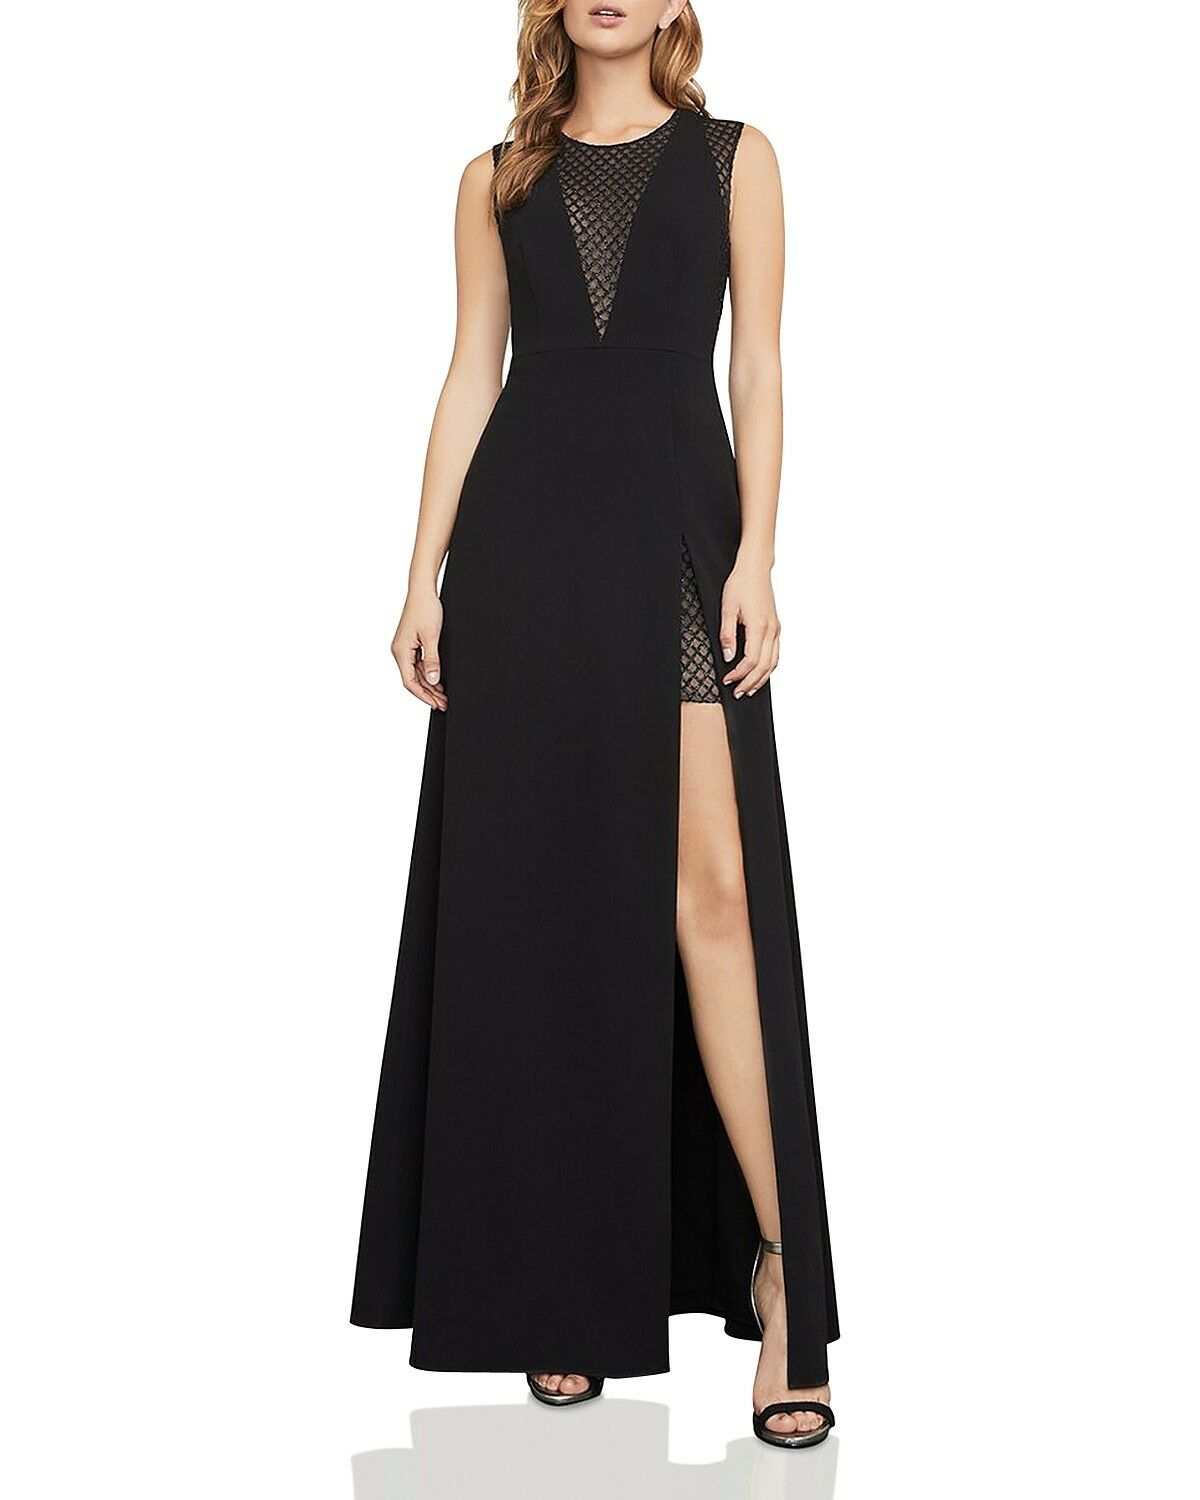 BCBGMAXAZRIA Mesh-Inset Gown MSRP  338 Size 12 AN 2132 NEW